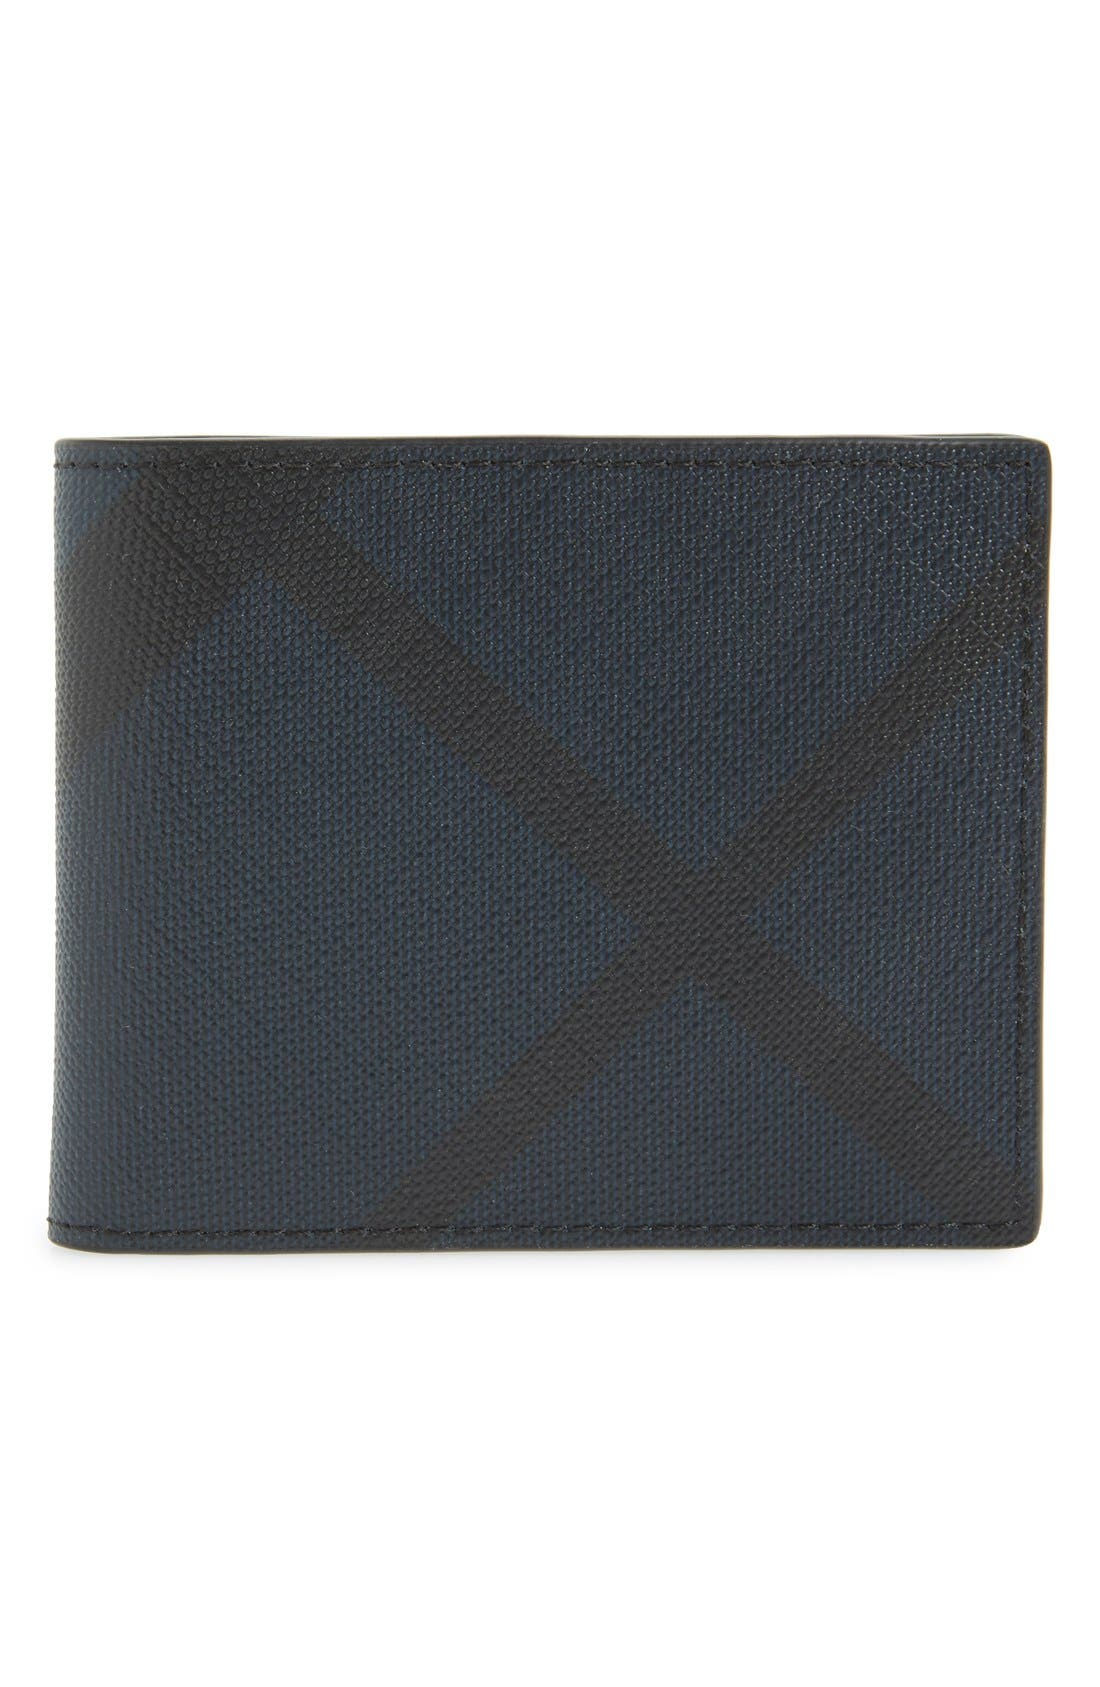 Check Wallet,                         Main,                         color, 410